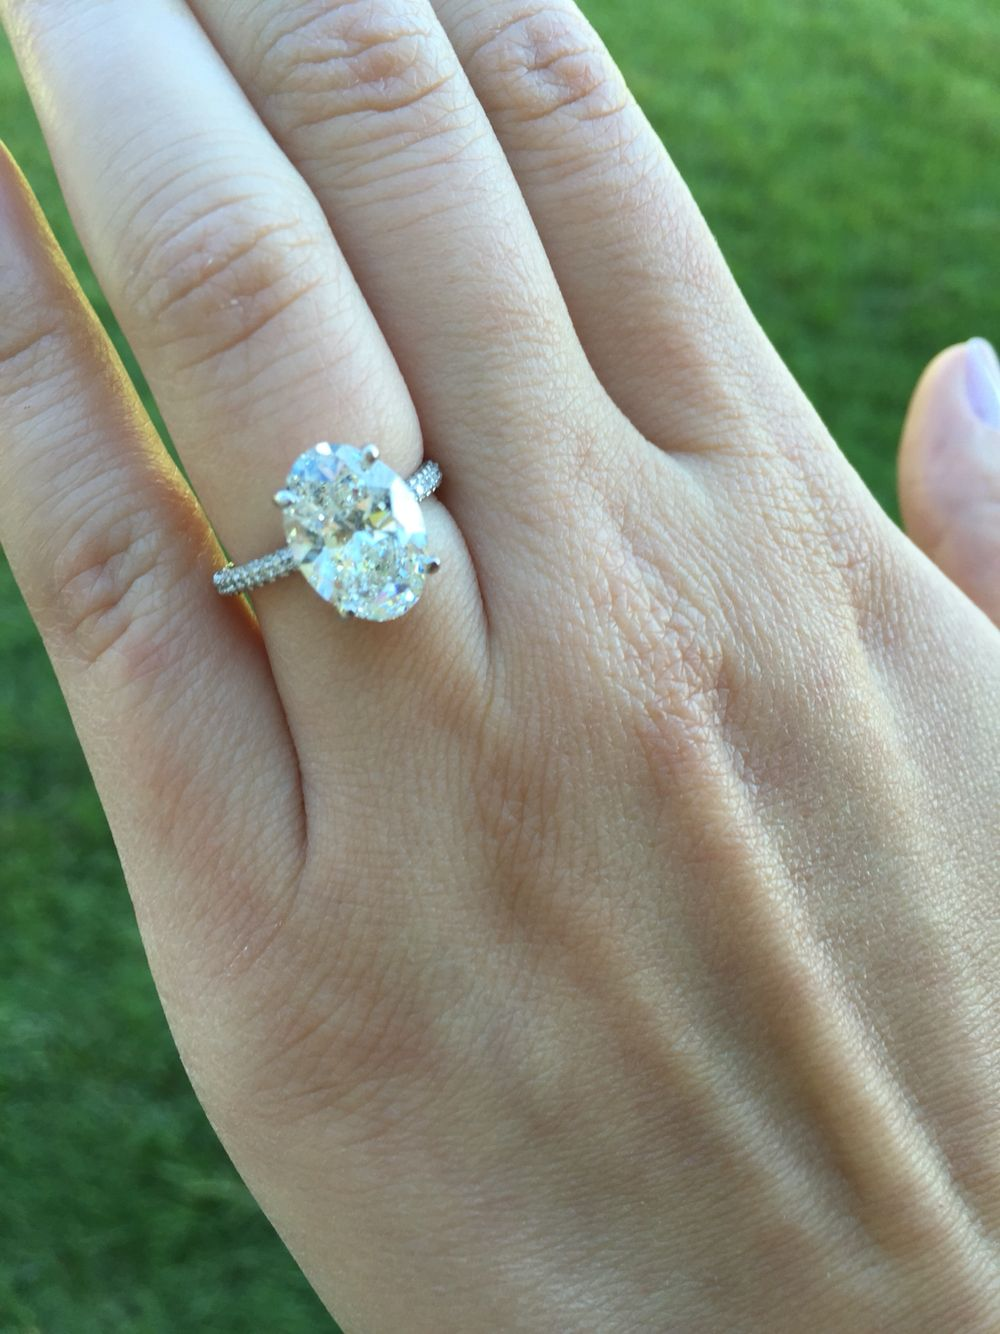 Find This Pin And More On Ring: Oval Engagement Rings 3 Carat